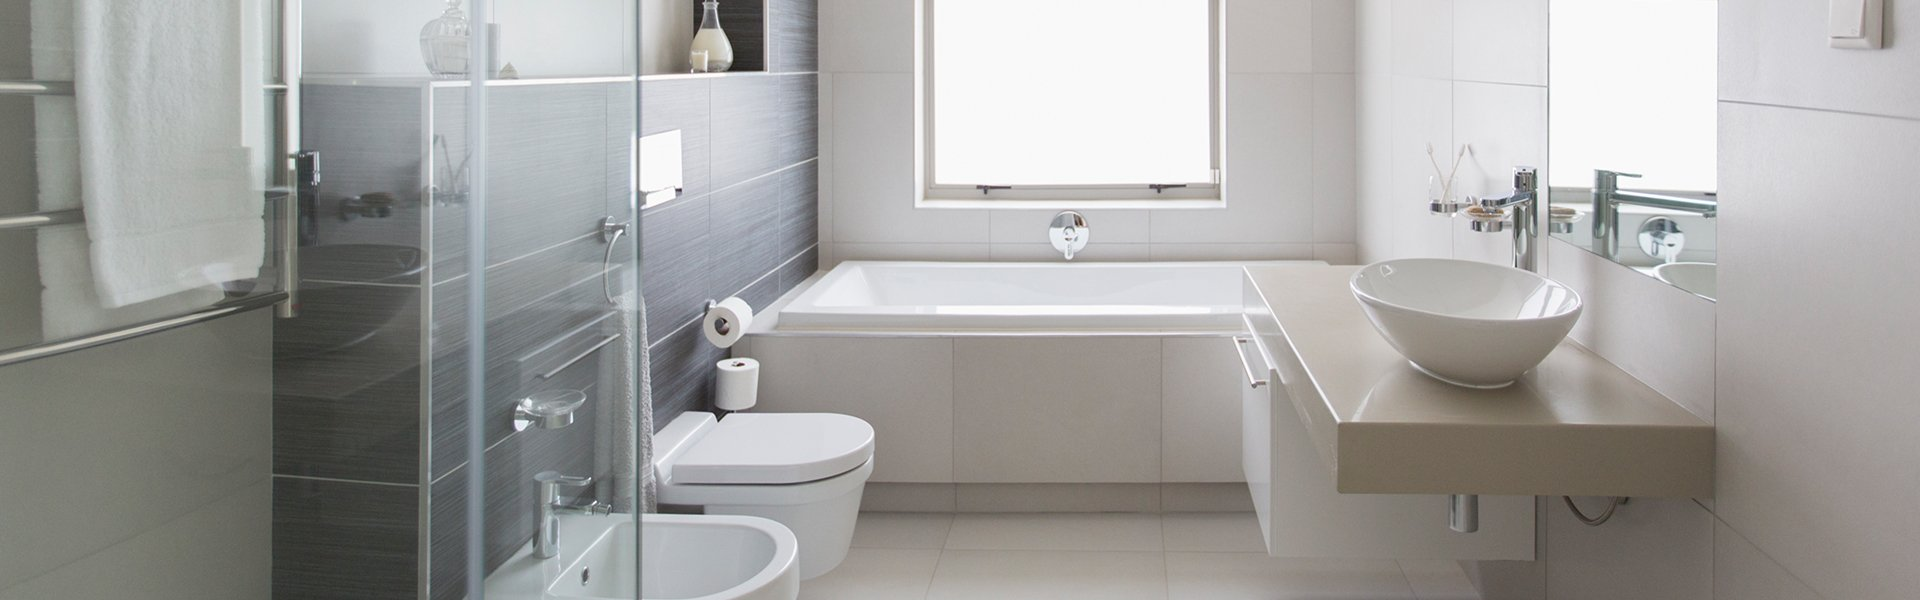 Bathroom design and installation for clients in Birmingham